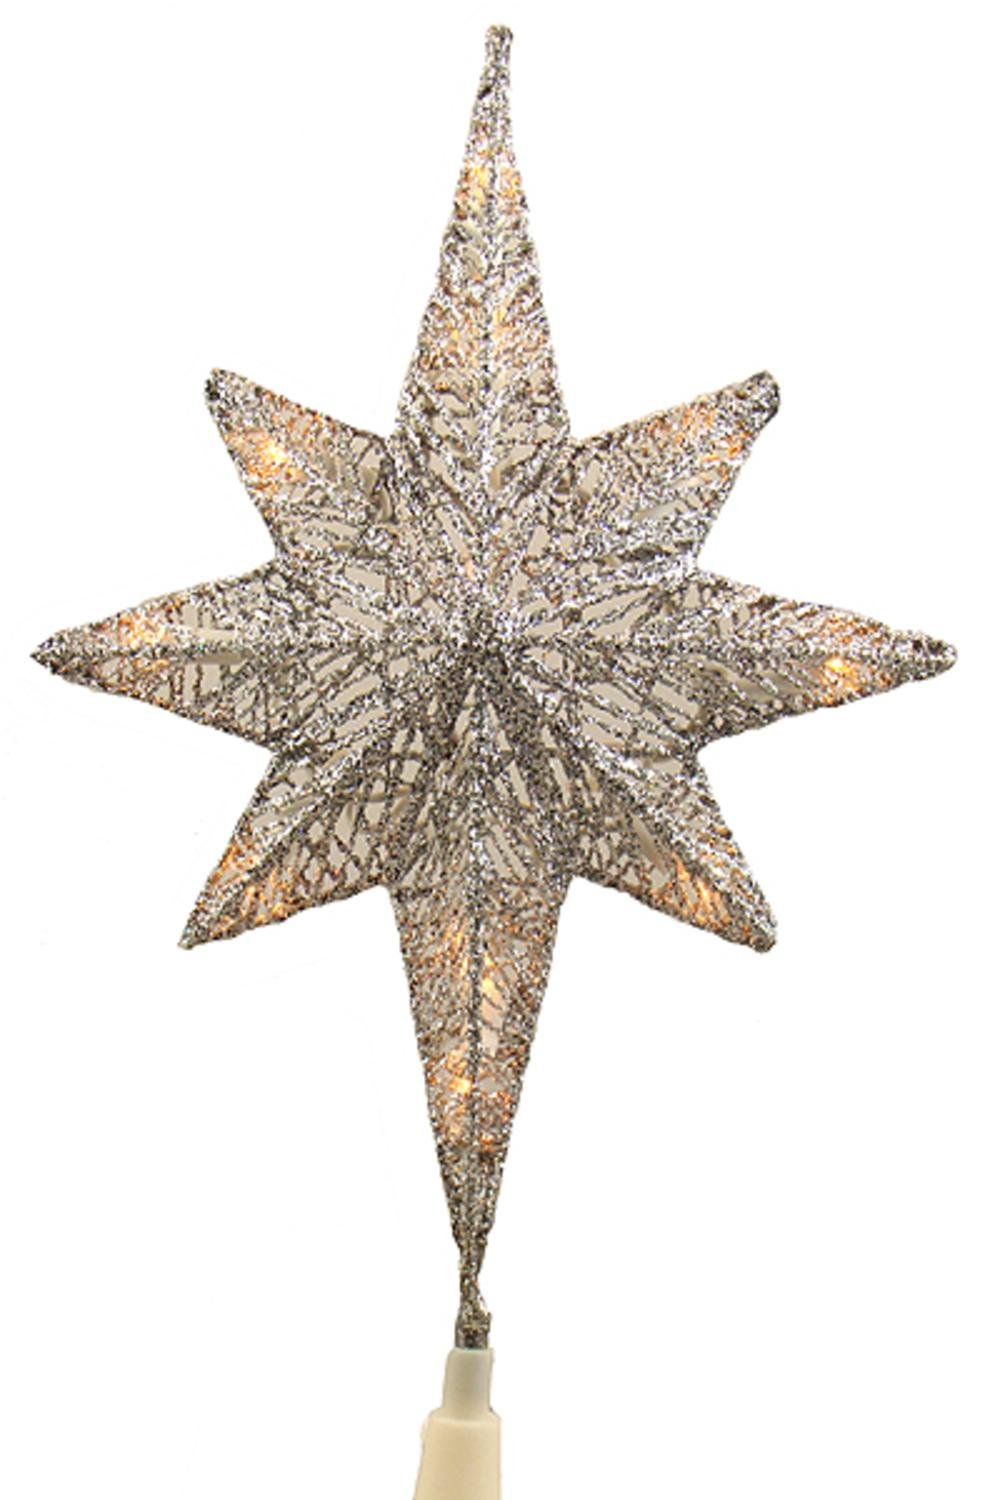 amazoncom 12 lighted silver glitter star of bethlehem christmas tree topper clear lights home kitchen - Glitter Christmas Tree